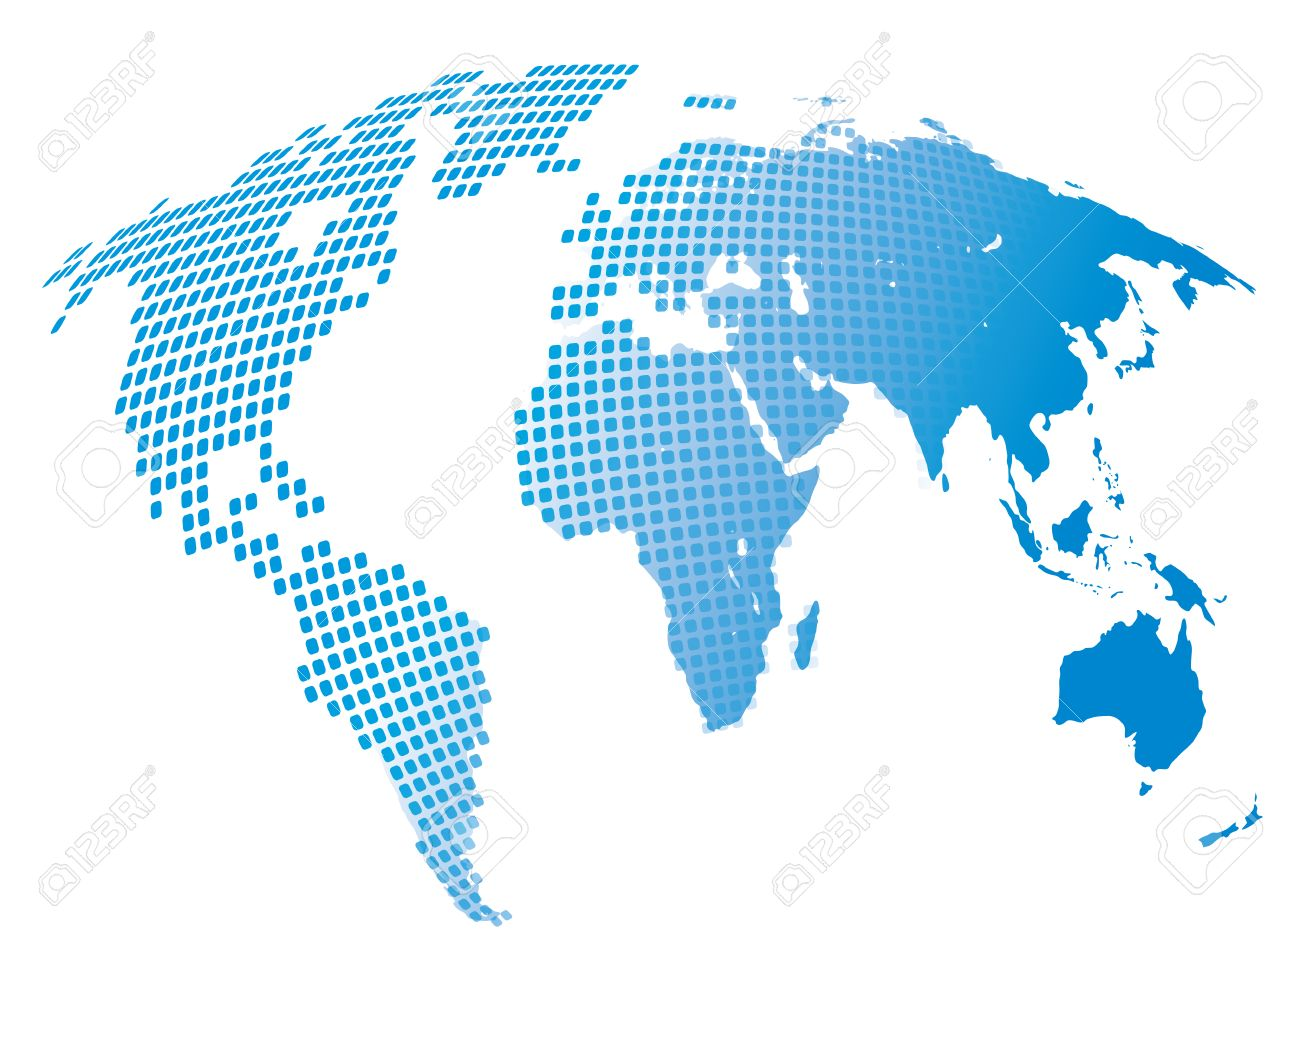 Stylized image of the world map vector illustration stock photo illustration stylized image of the world map vector illustration gumiabroncs Choice Image